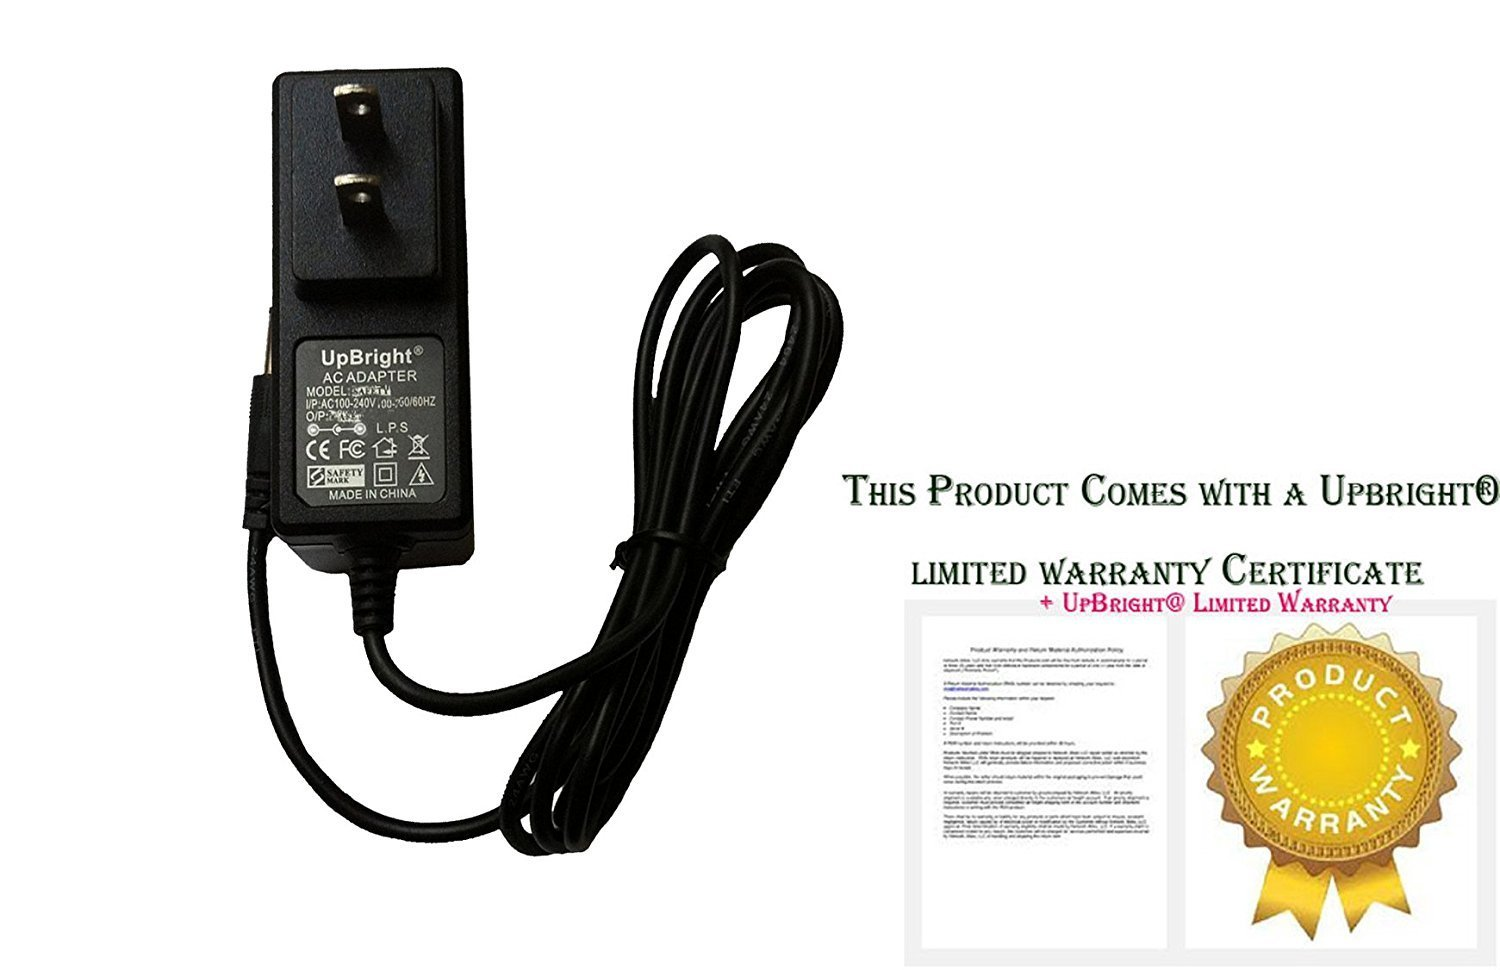 UpBright New AC / DC Adapter For NEC ITL, DT700 Series TEL ILV (XD) Z-Y (BK) ILV (XD) ZY (BK) ILV(XD)Z-Y ILV(XD)ZY ILVXDZ-Y ILVXD ZY ILVXD Z-Y IP Phone VoIP Telephone Power Supply Cord Cable Charger Input: 100 - 240 VAC Worldwide Use Mains PSU